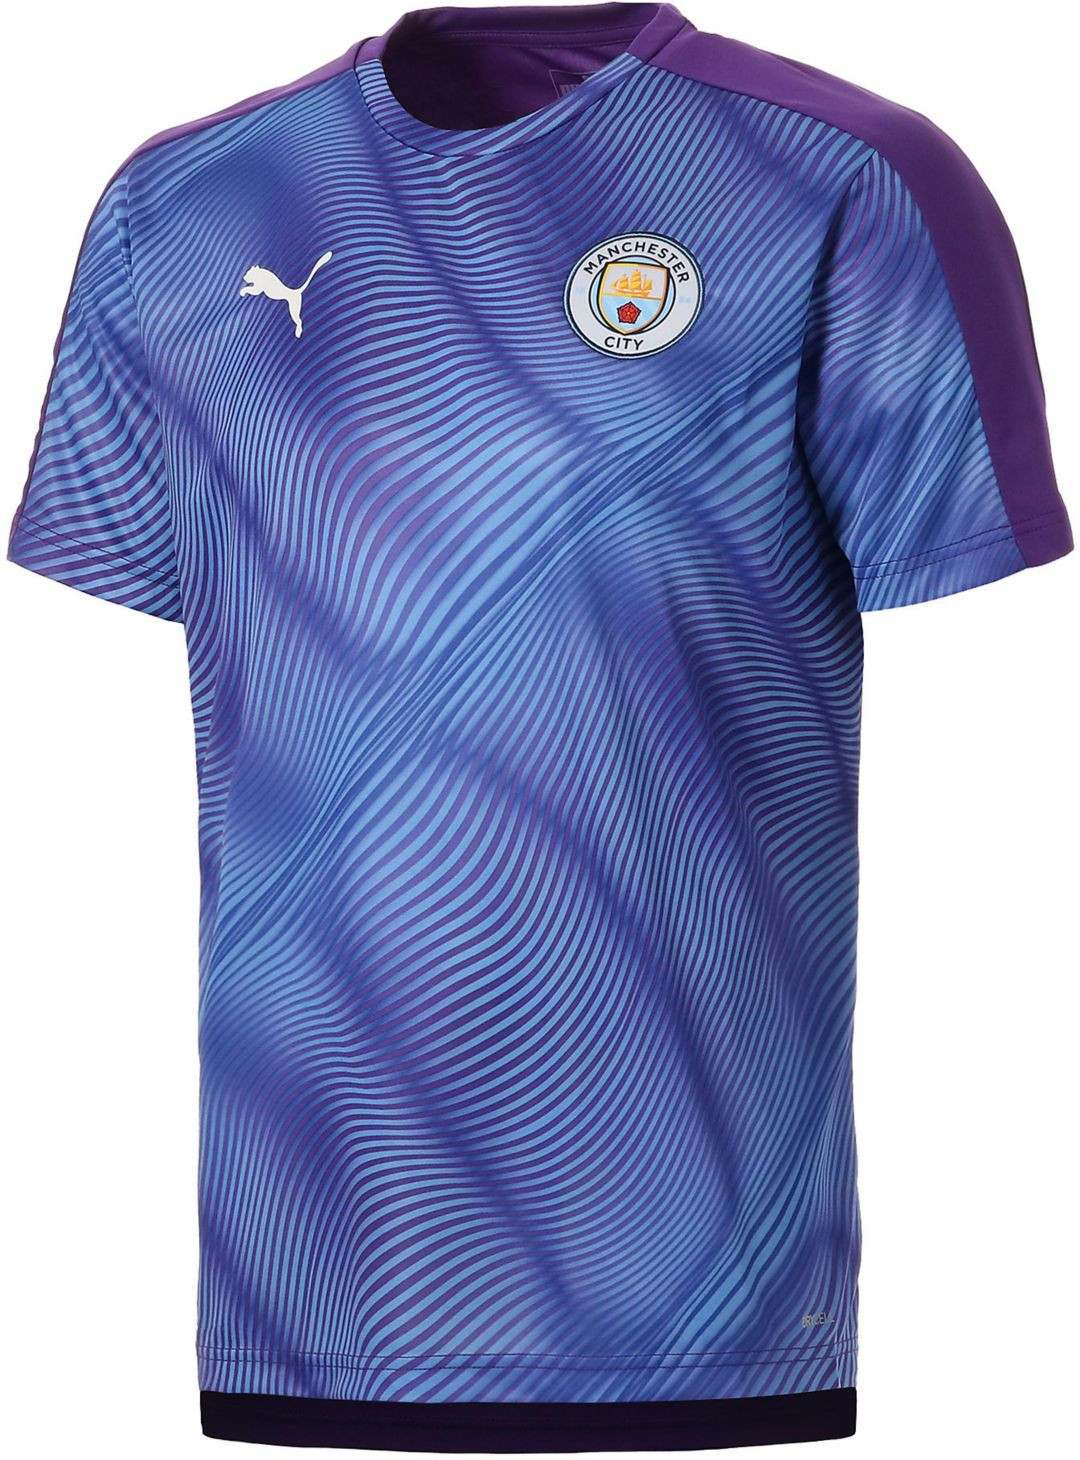 huge selection of 2aacd b8f58 PUMA Men's Manchester City Prematch Purple Shirt